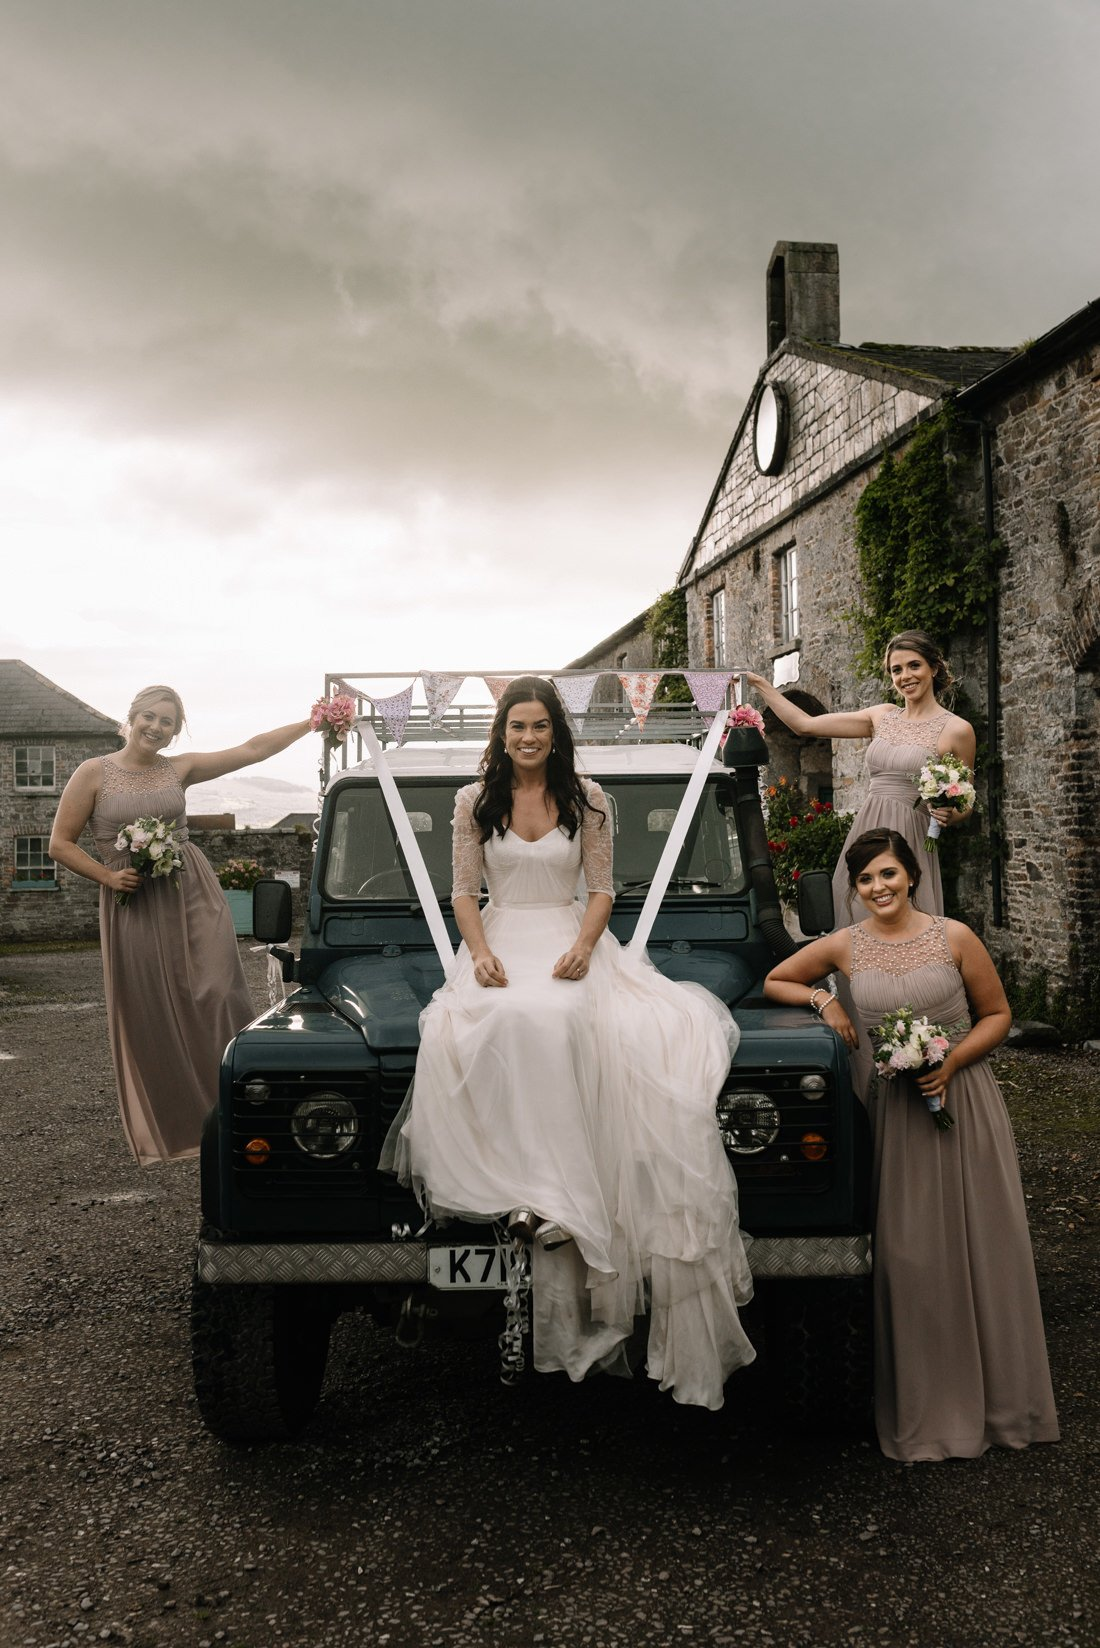 127 longueville house wedding photographer cork ireland